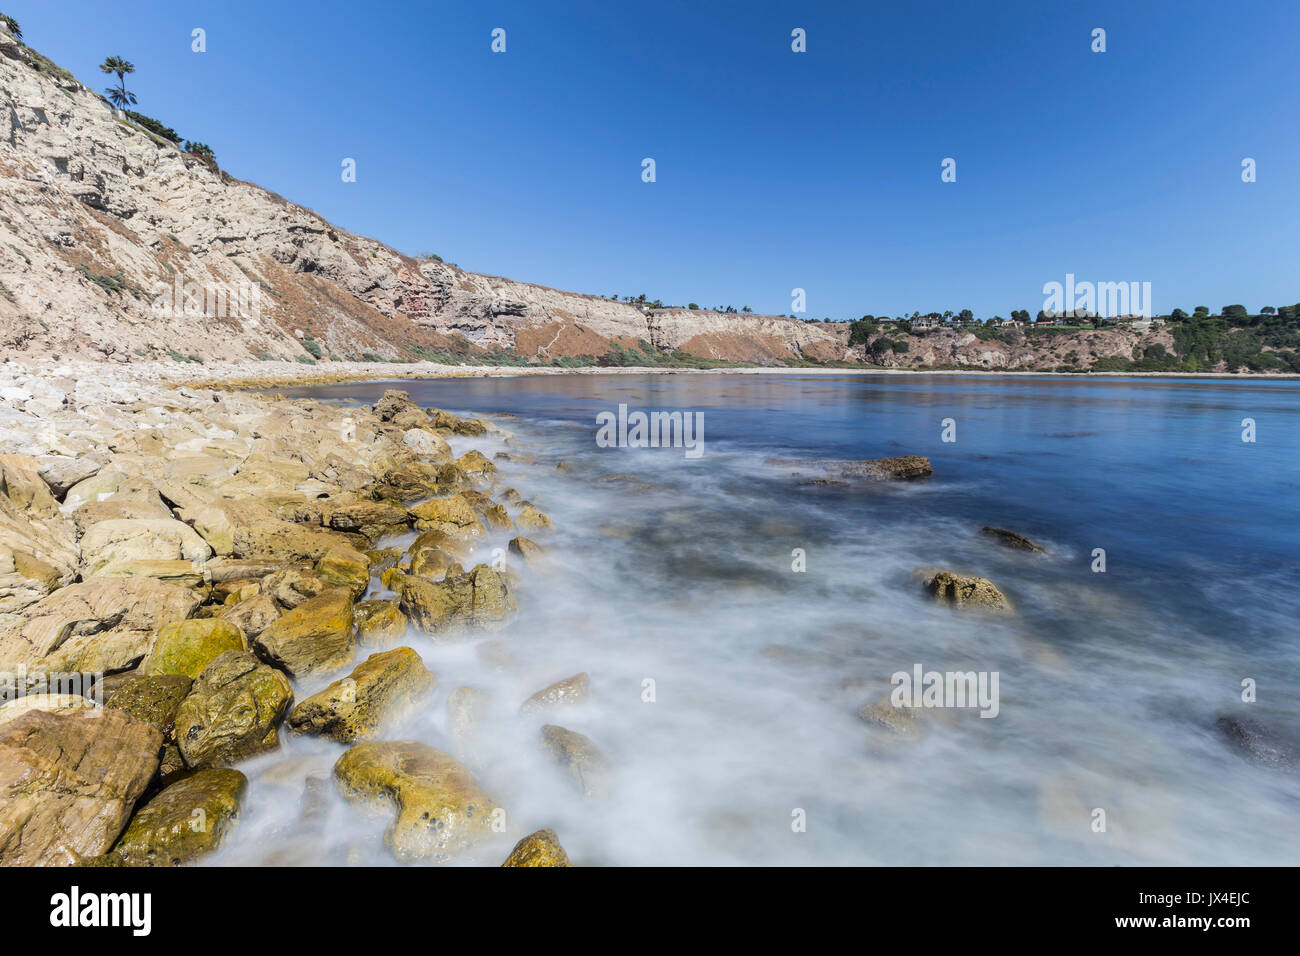 Lunada Bay with motion blur water in the Palos Verdes Estates area of Los Angeles County, California. - Stock Image